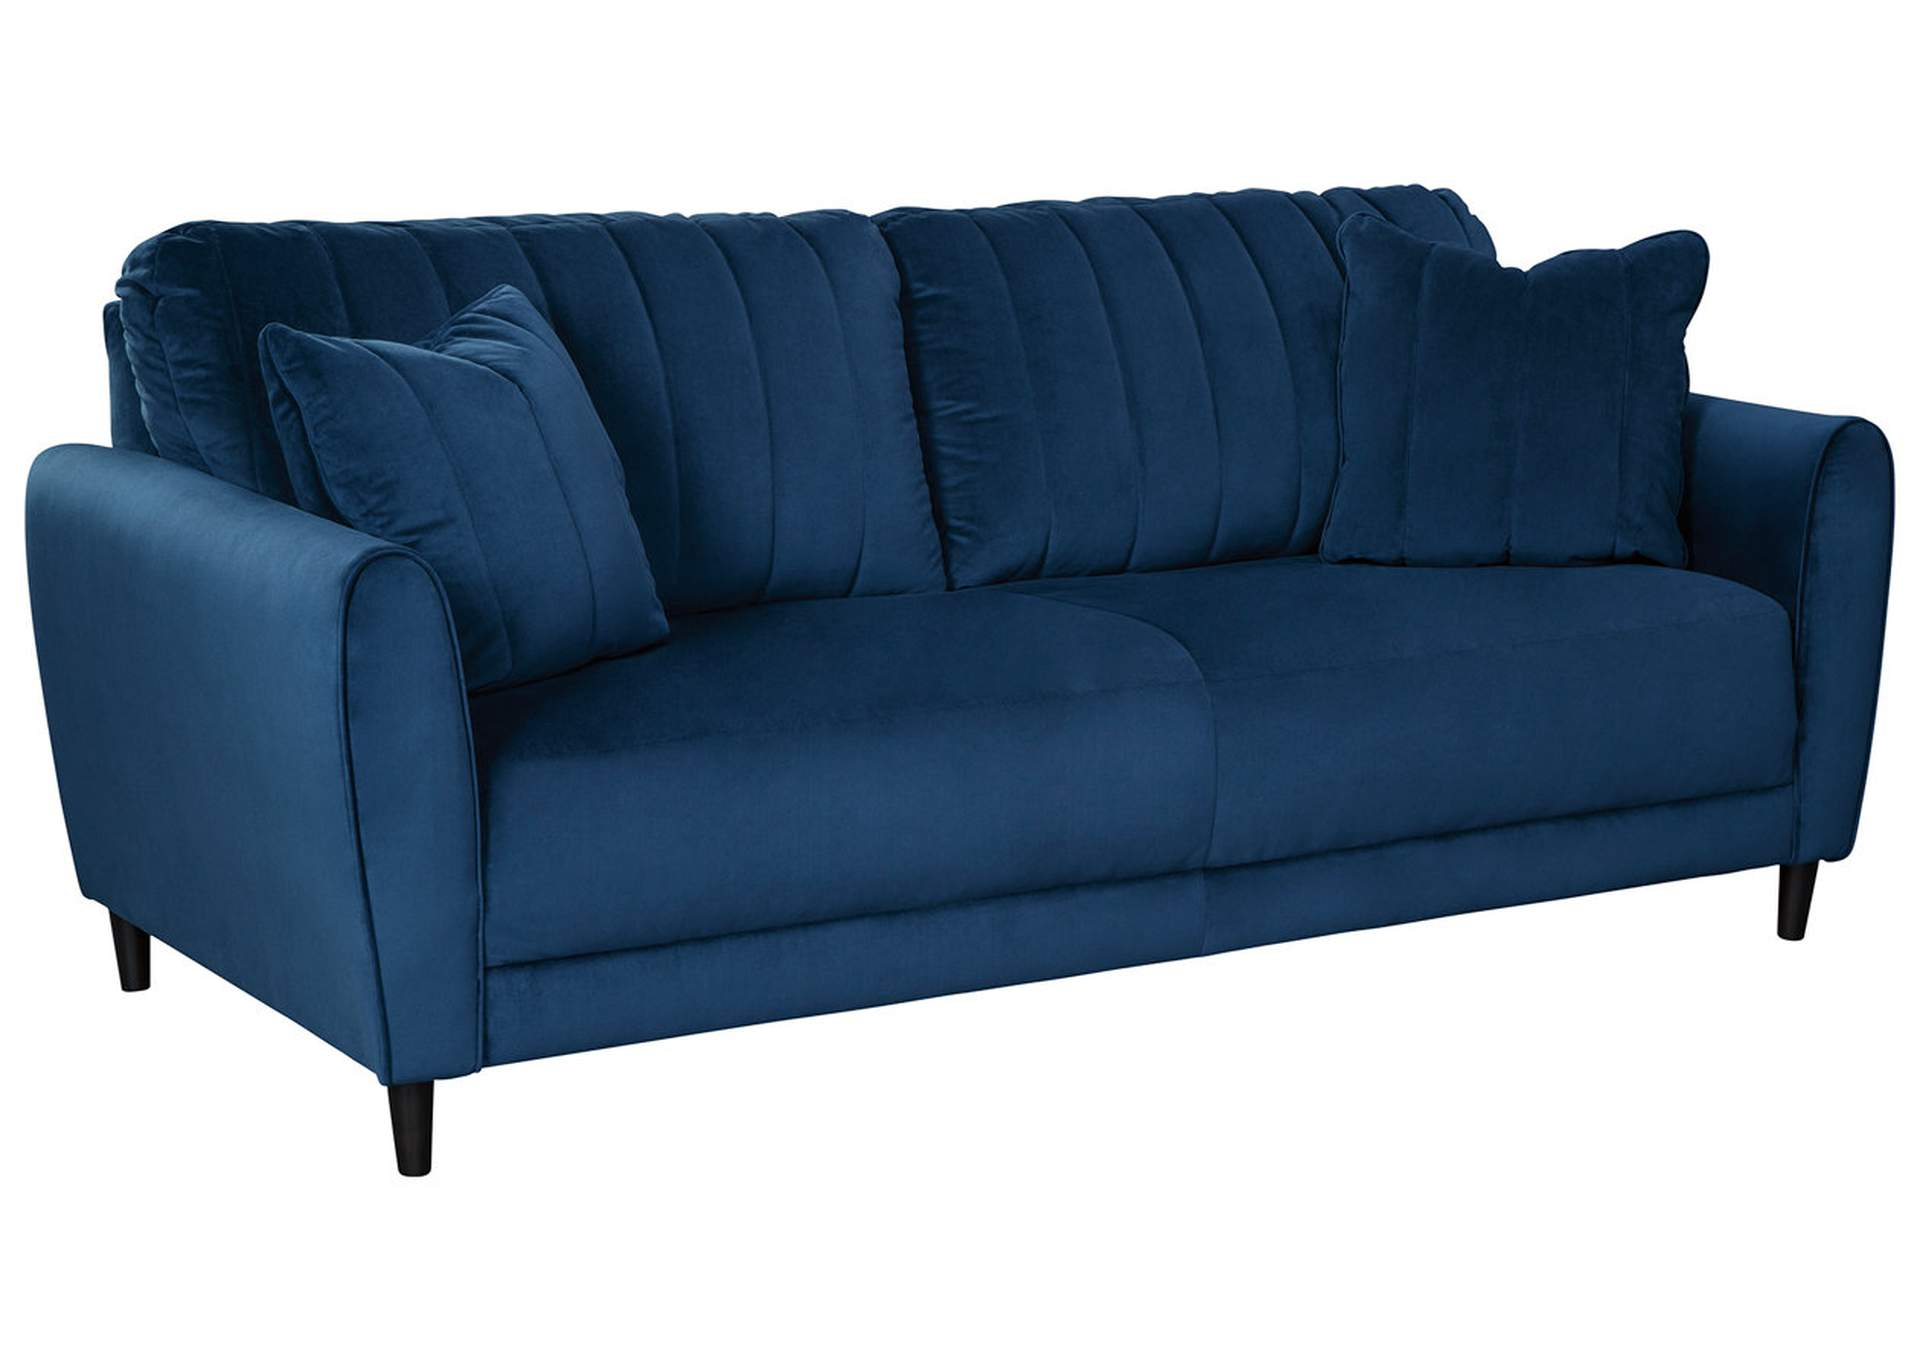 Enderlin Ink Sofa,Signature Design By Ashley